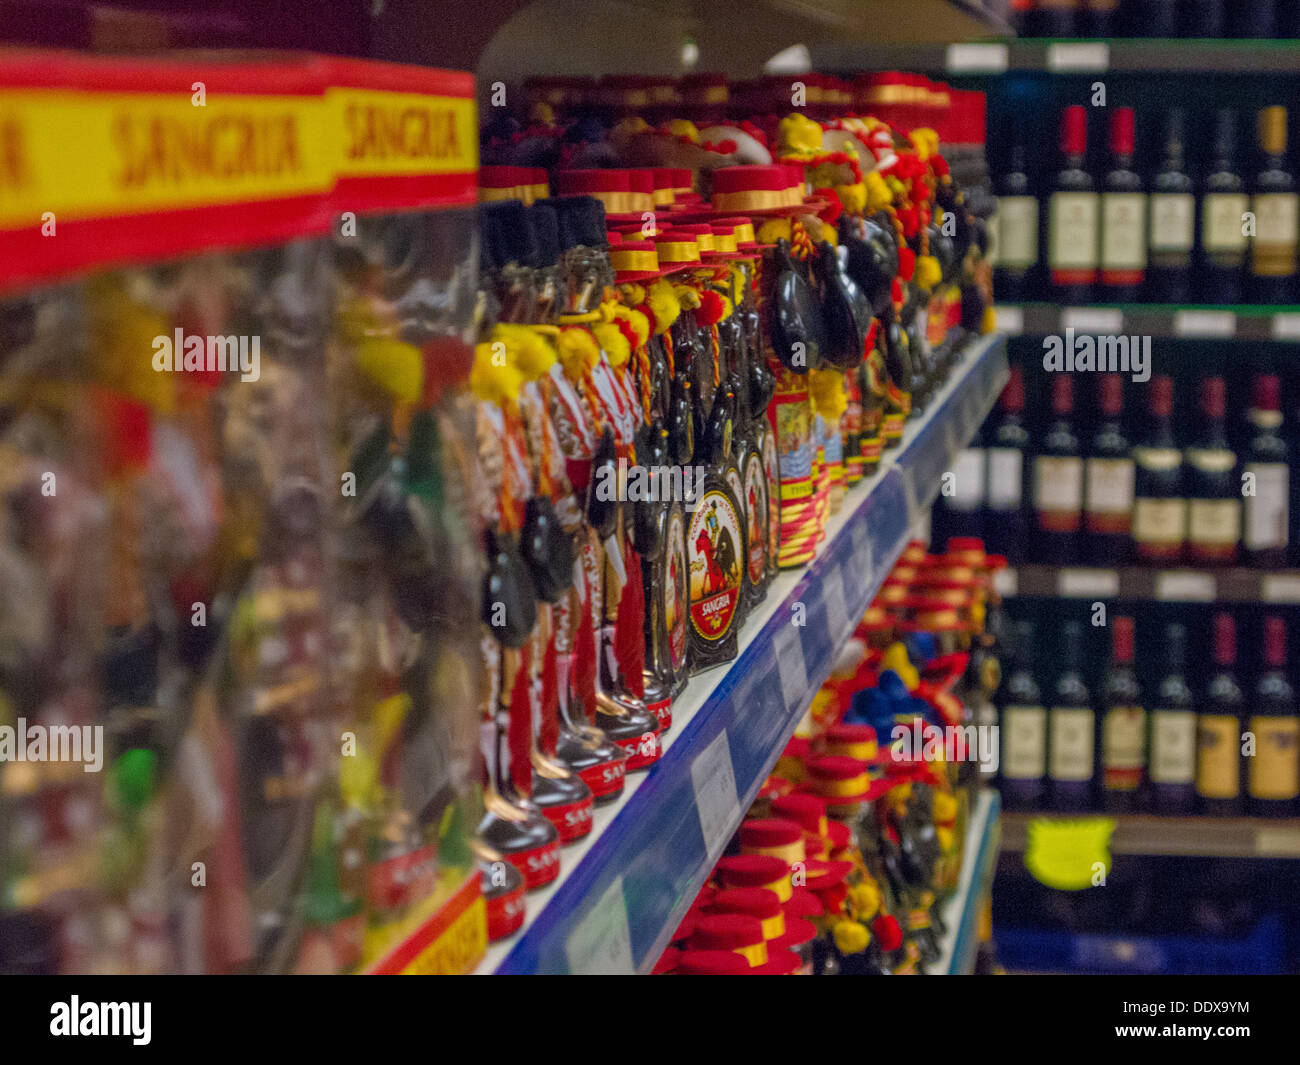 Misc Sangria products in a shelf in Spain - Stock Image